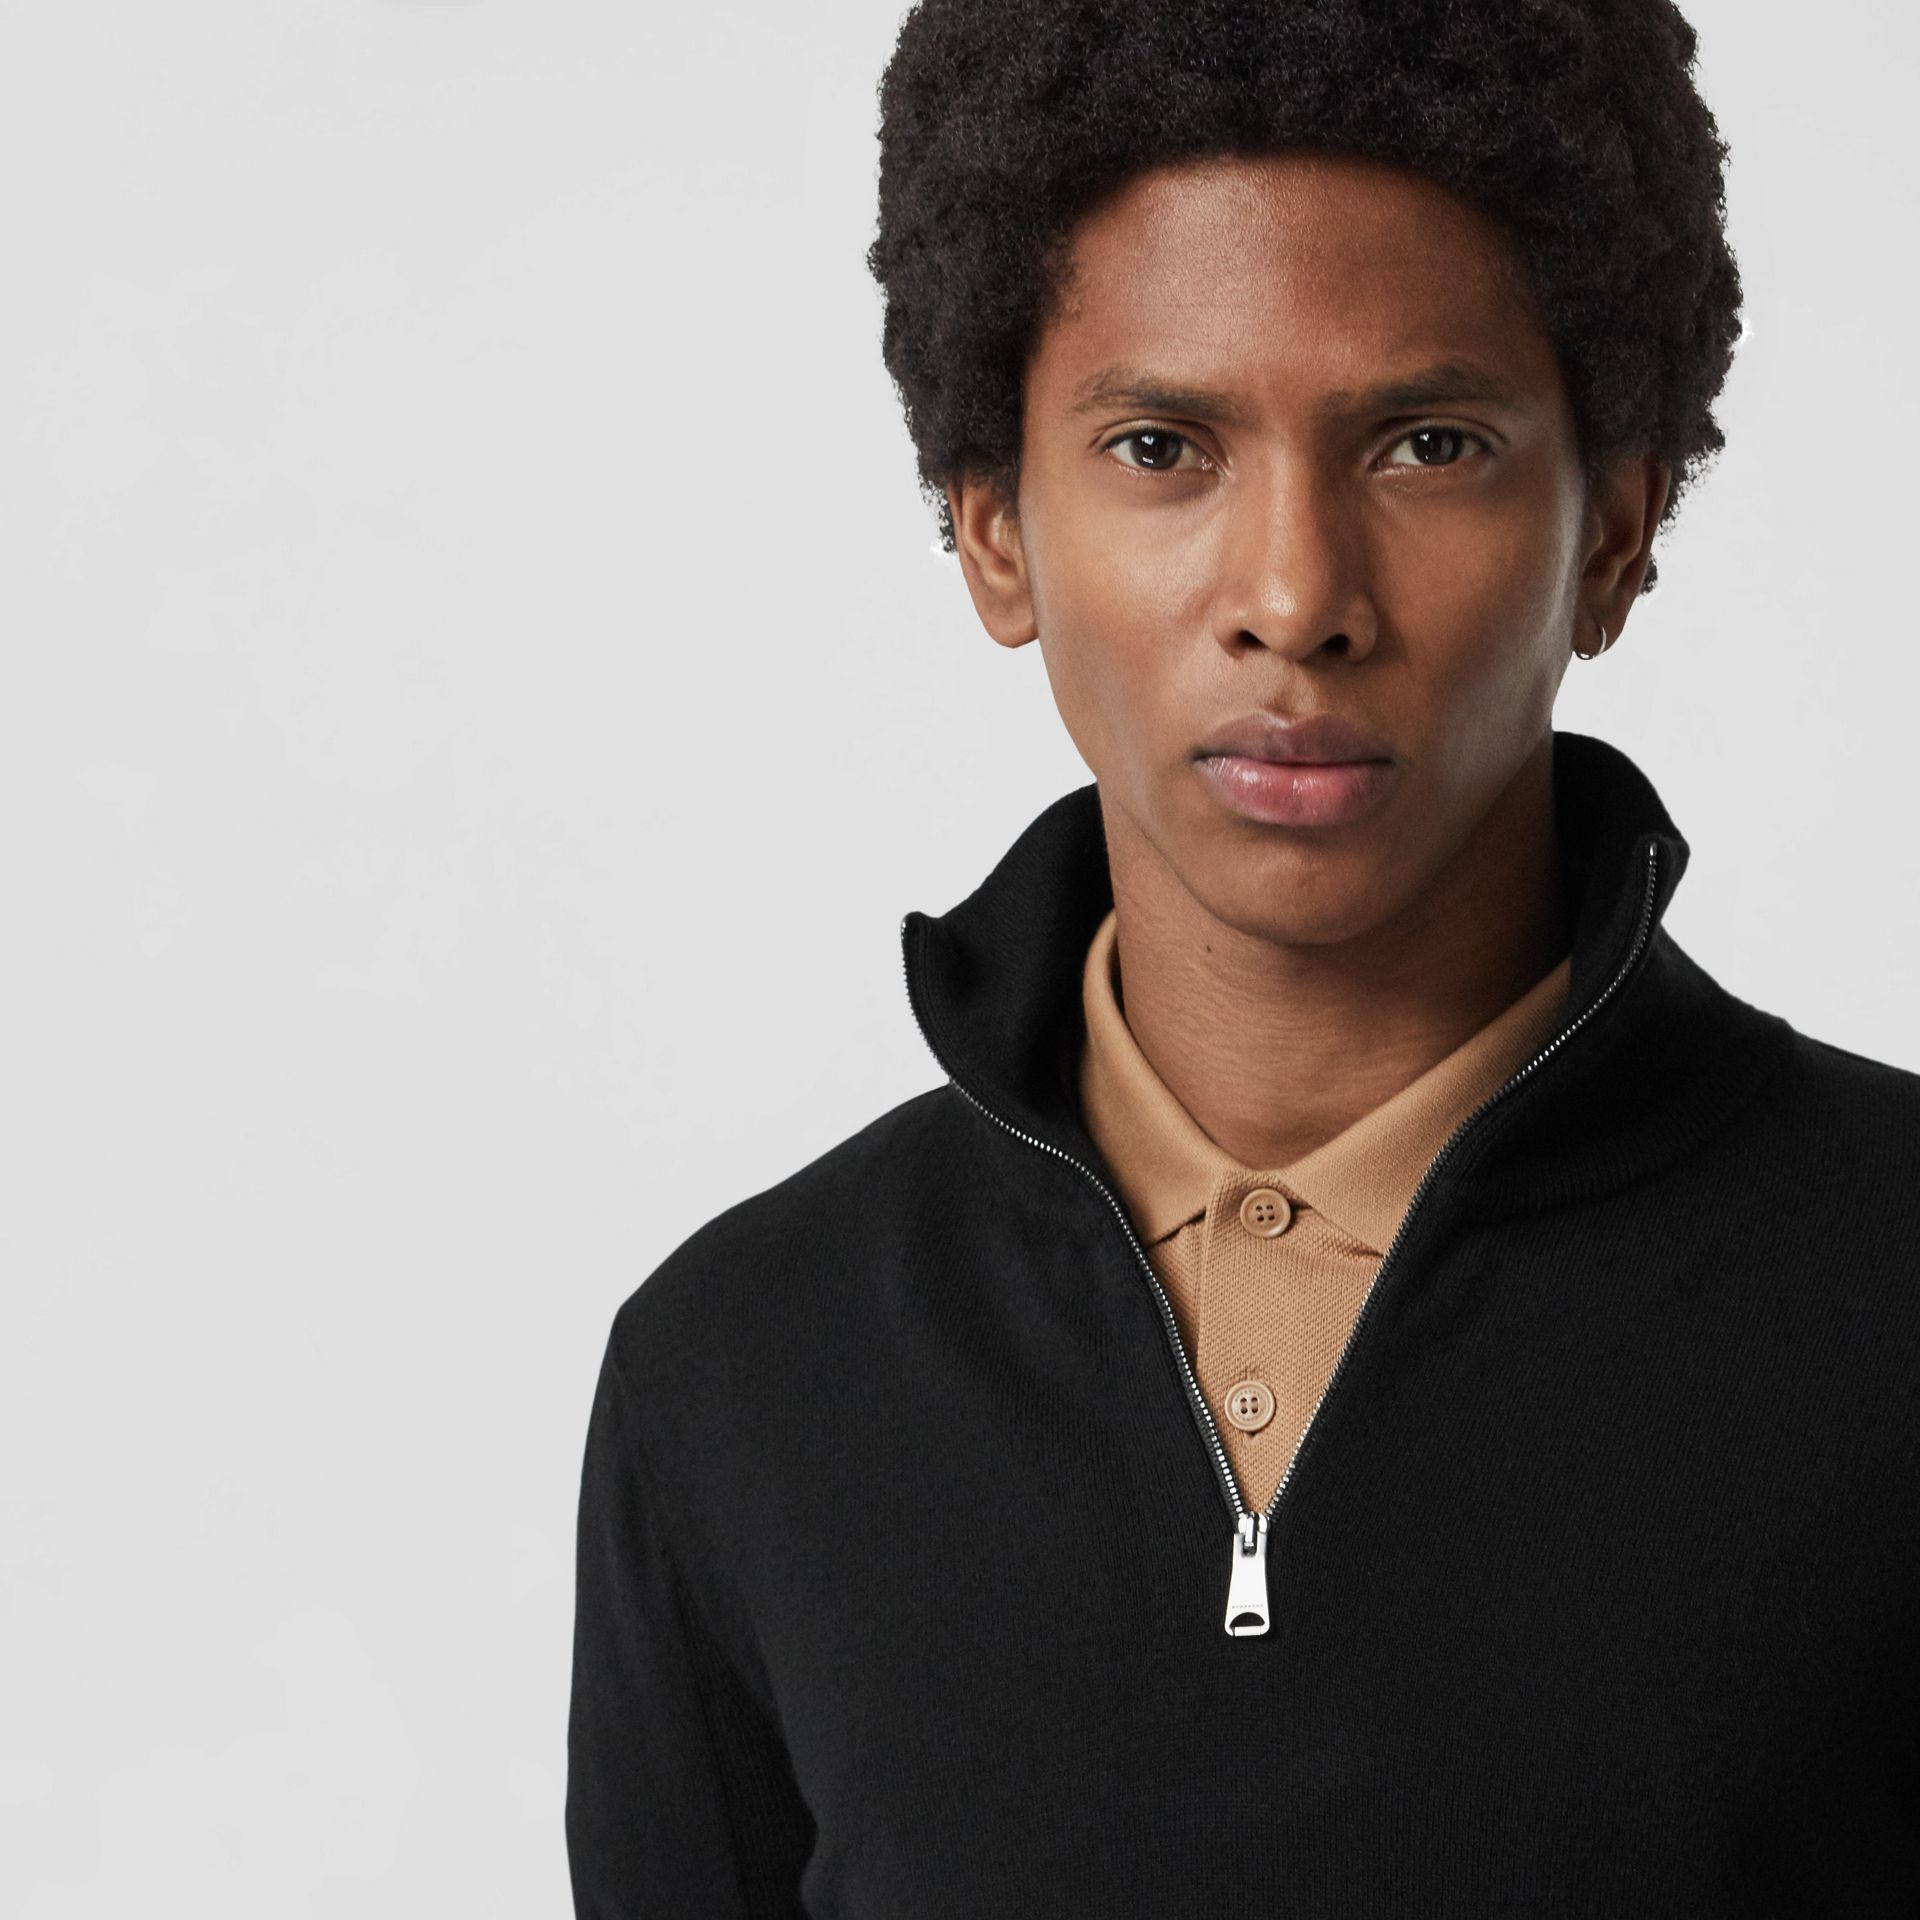 Merino Wool Half-zip Sweater in Black - Men | Burberry Australia - gallery image 4